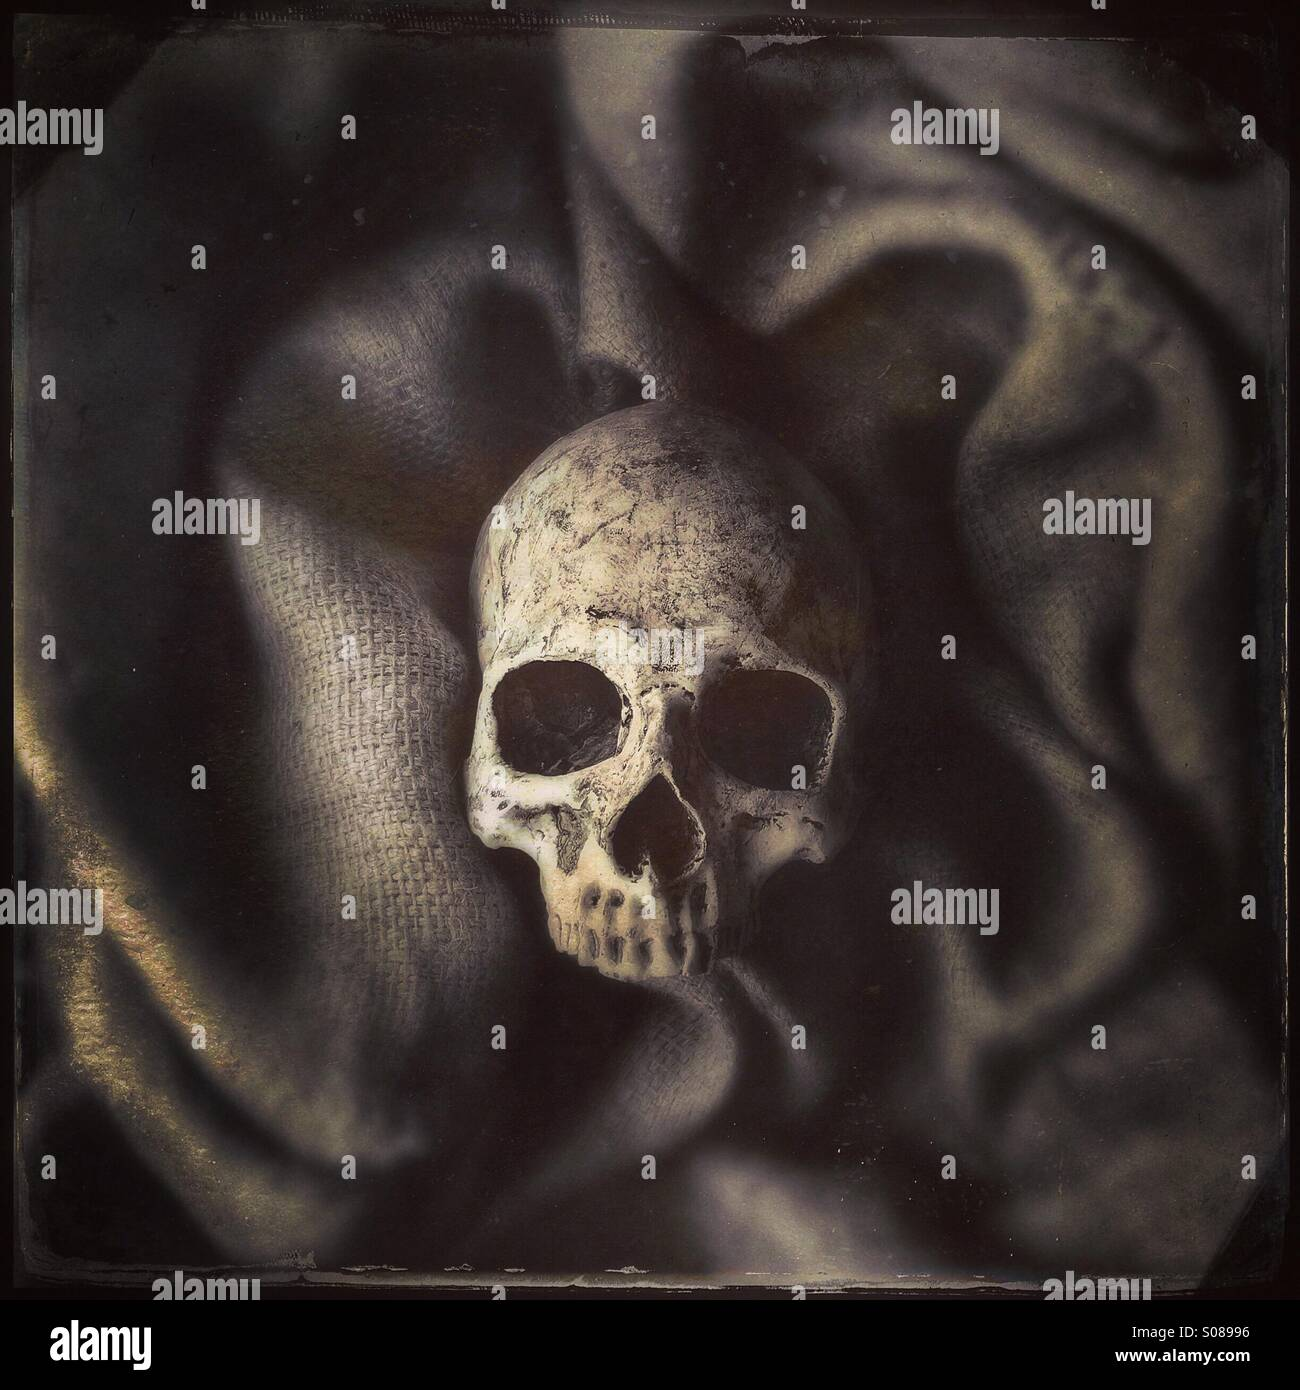 Human skull surrounded by burlap - Stock Image